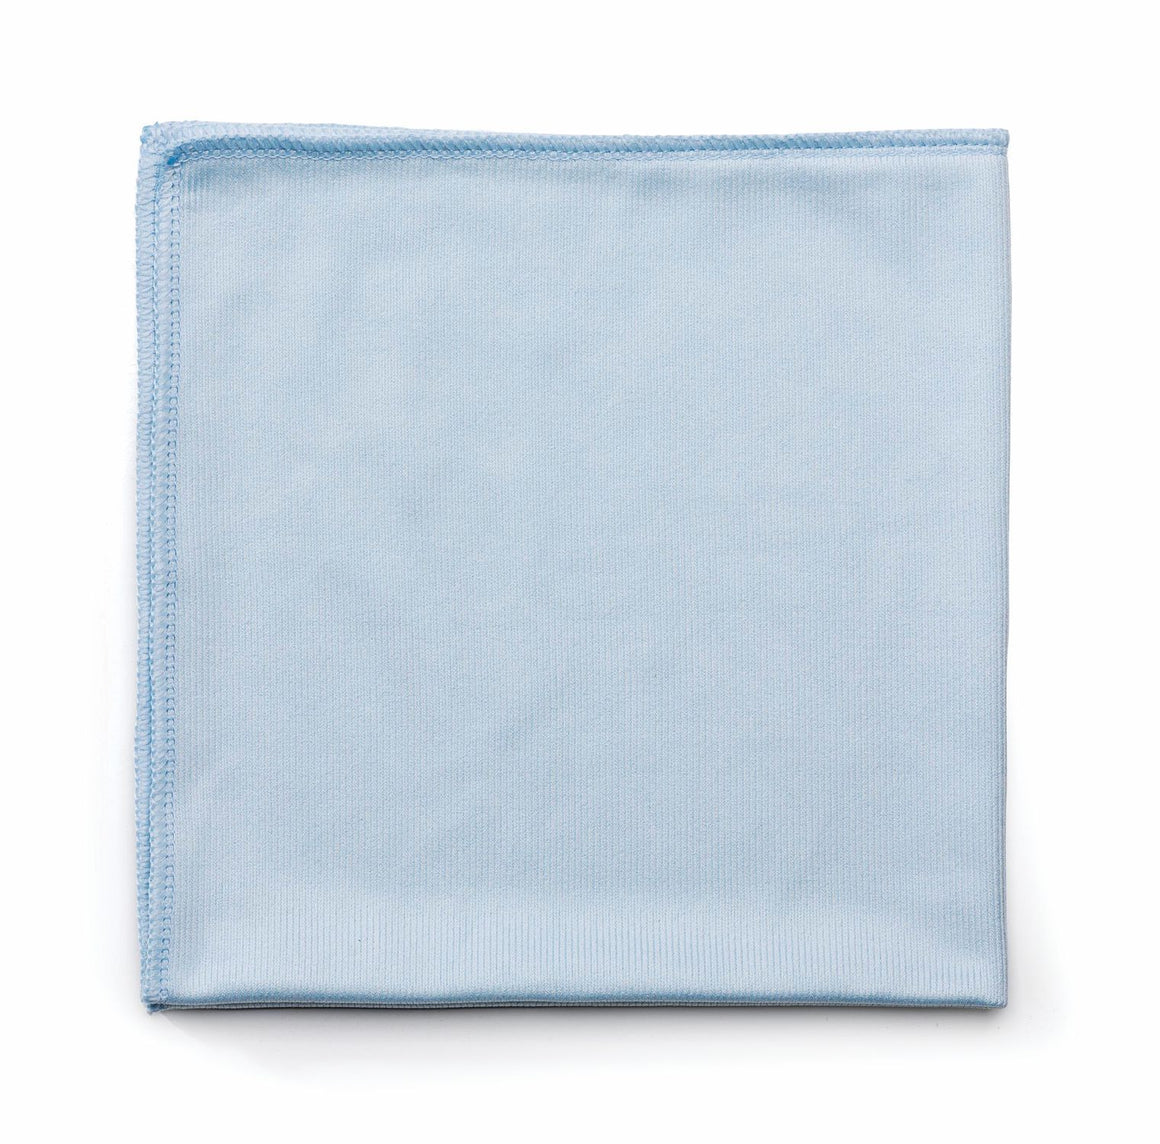 "MICROFIBER GLASS CLOTH 16x16"" L-BLUE"